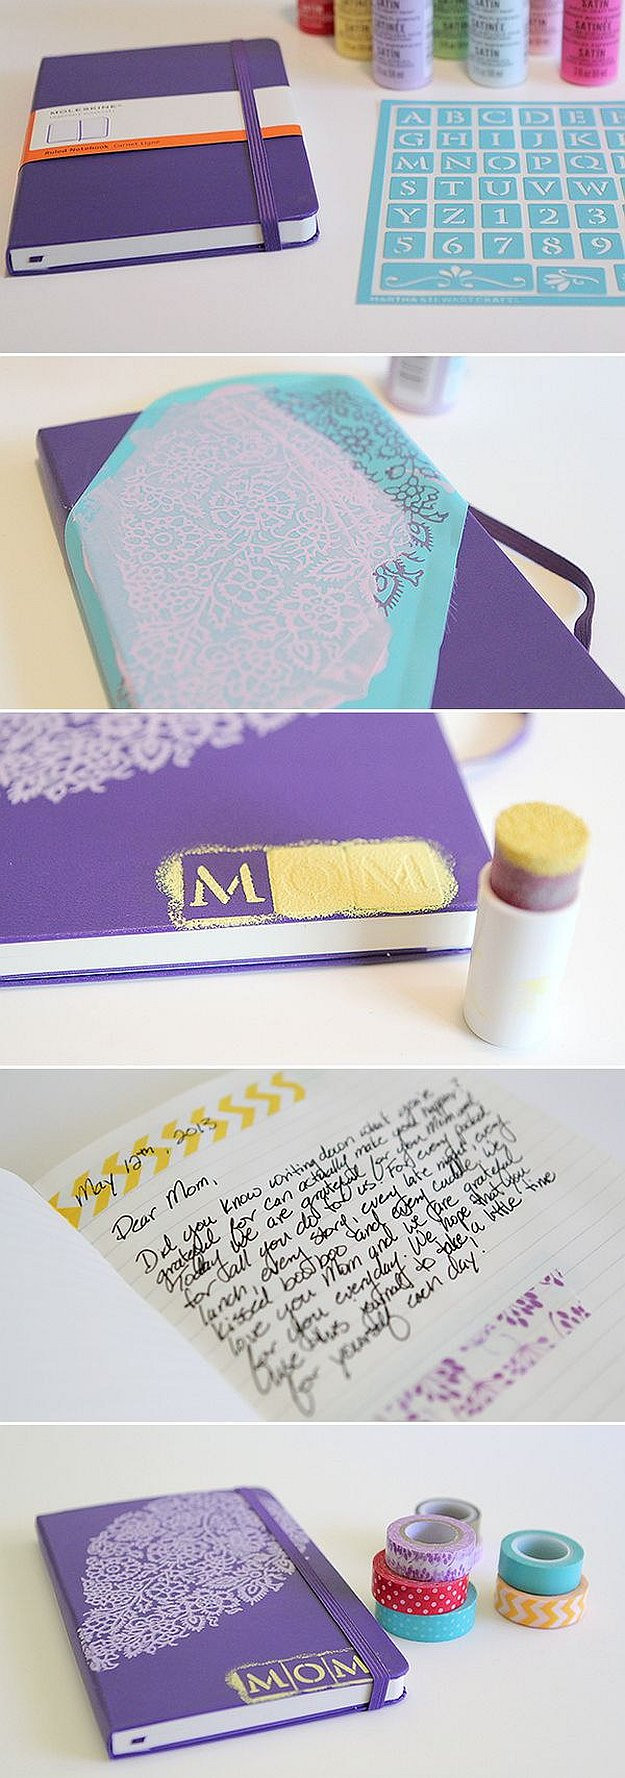 Best ideas about Birthday Gifts For Mom . Save or Pin 10 DIY Birthday Gift Ideas for Mom DIY Projects Craft Now.